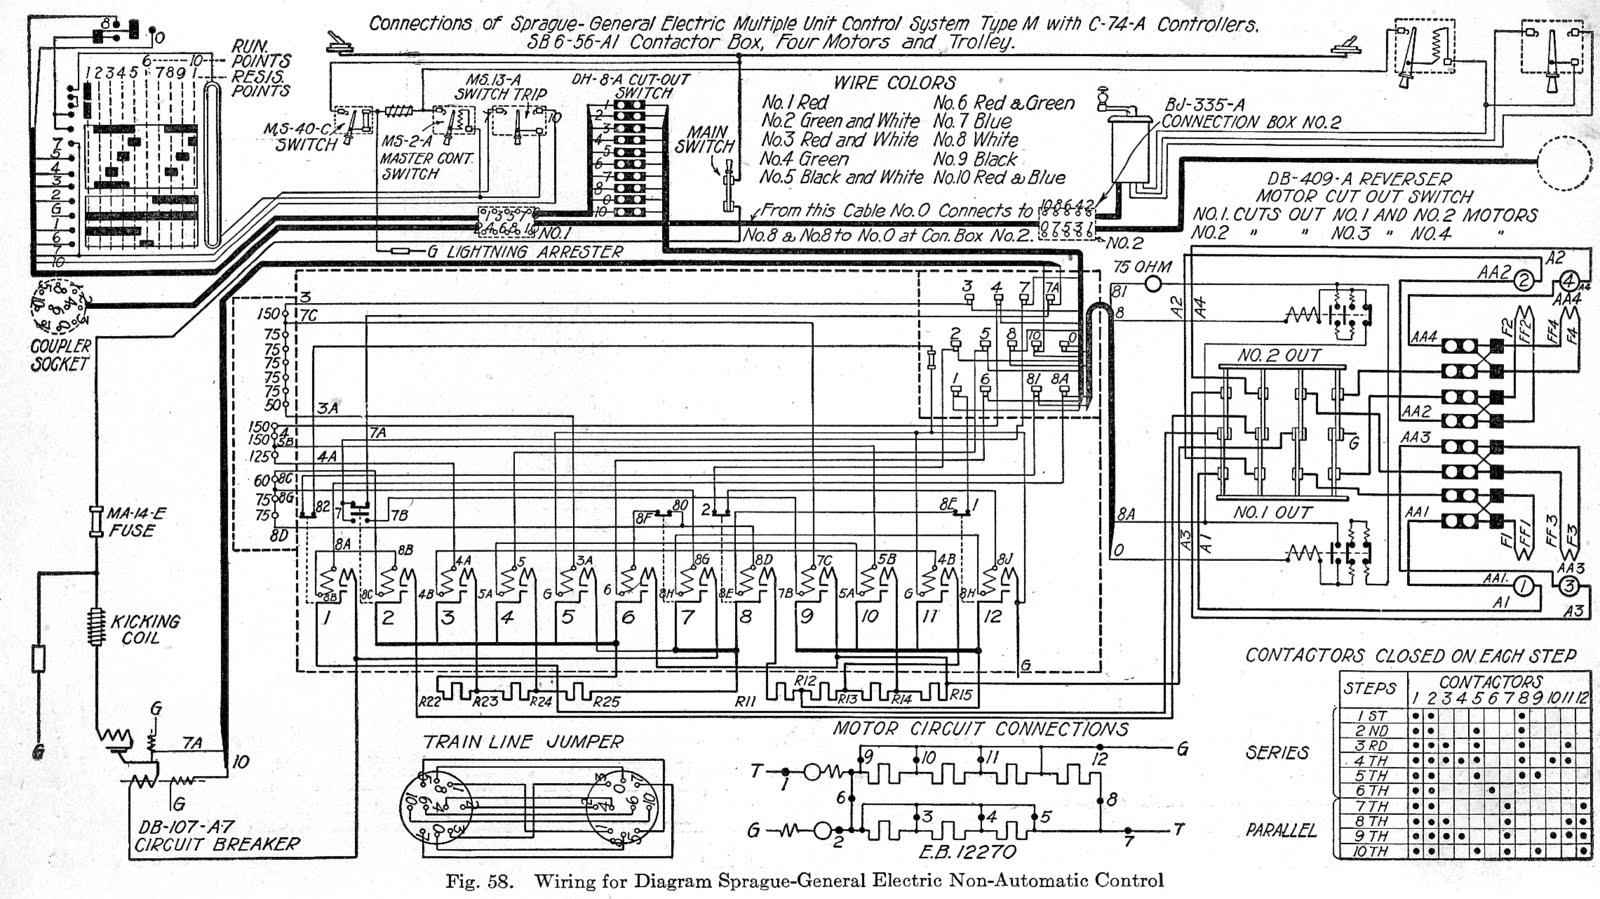 Citroen Relay Engine Wiring Diagram Libraries Diagrams Todayscitroen Fuse Simple 2005 Ford Escape